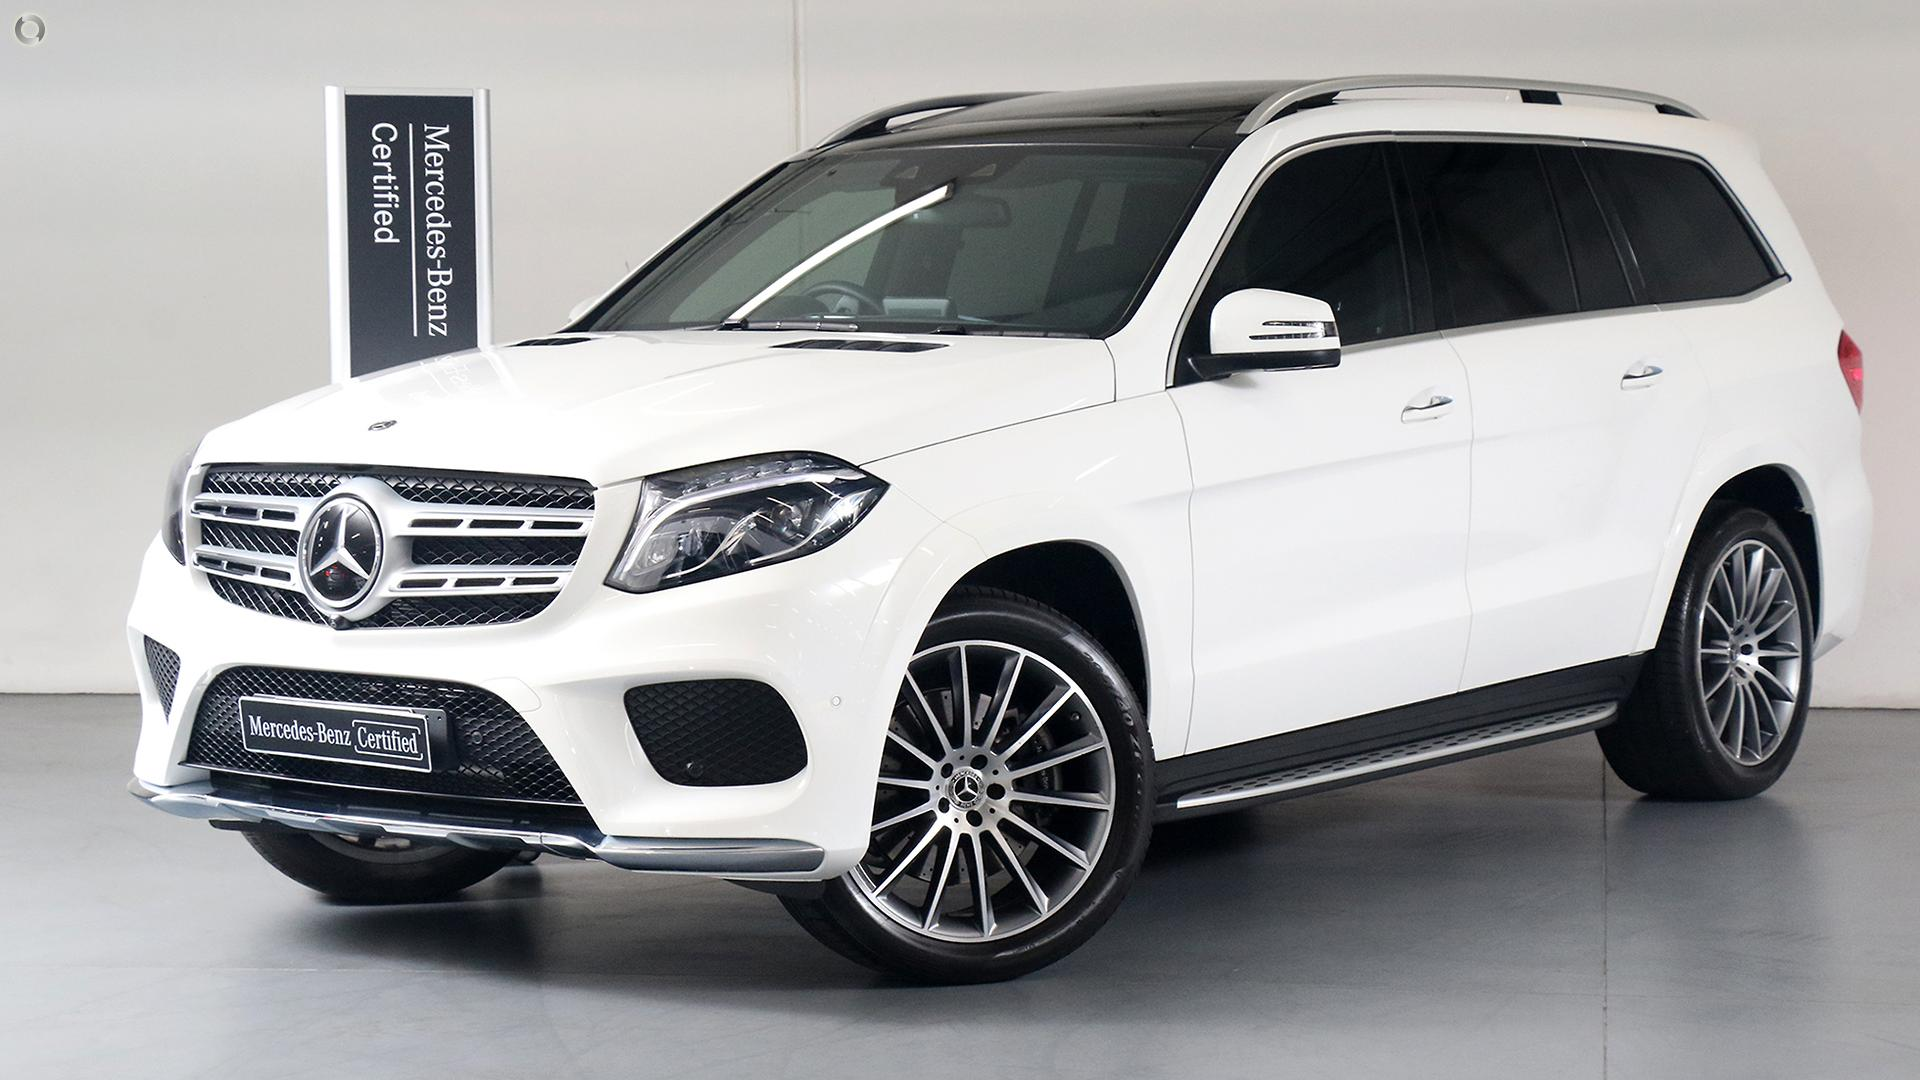 2018 Mercedes-Benz GLS 500 Wagon